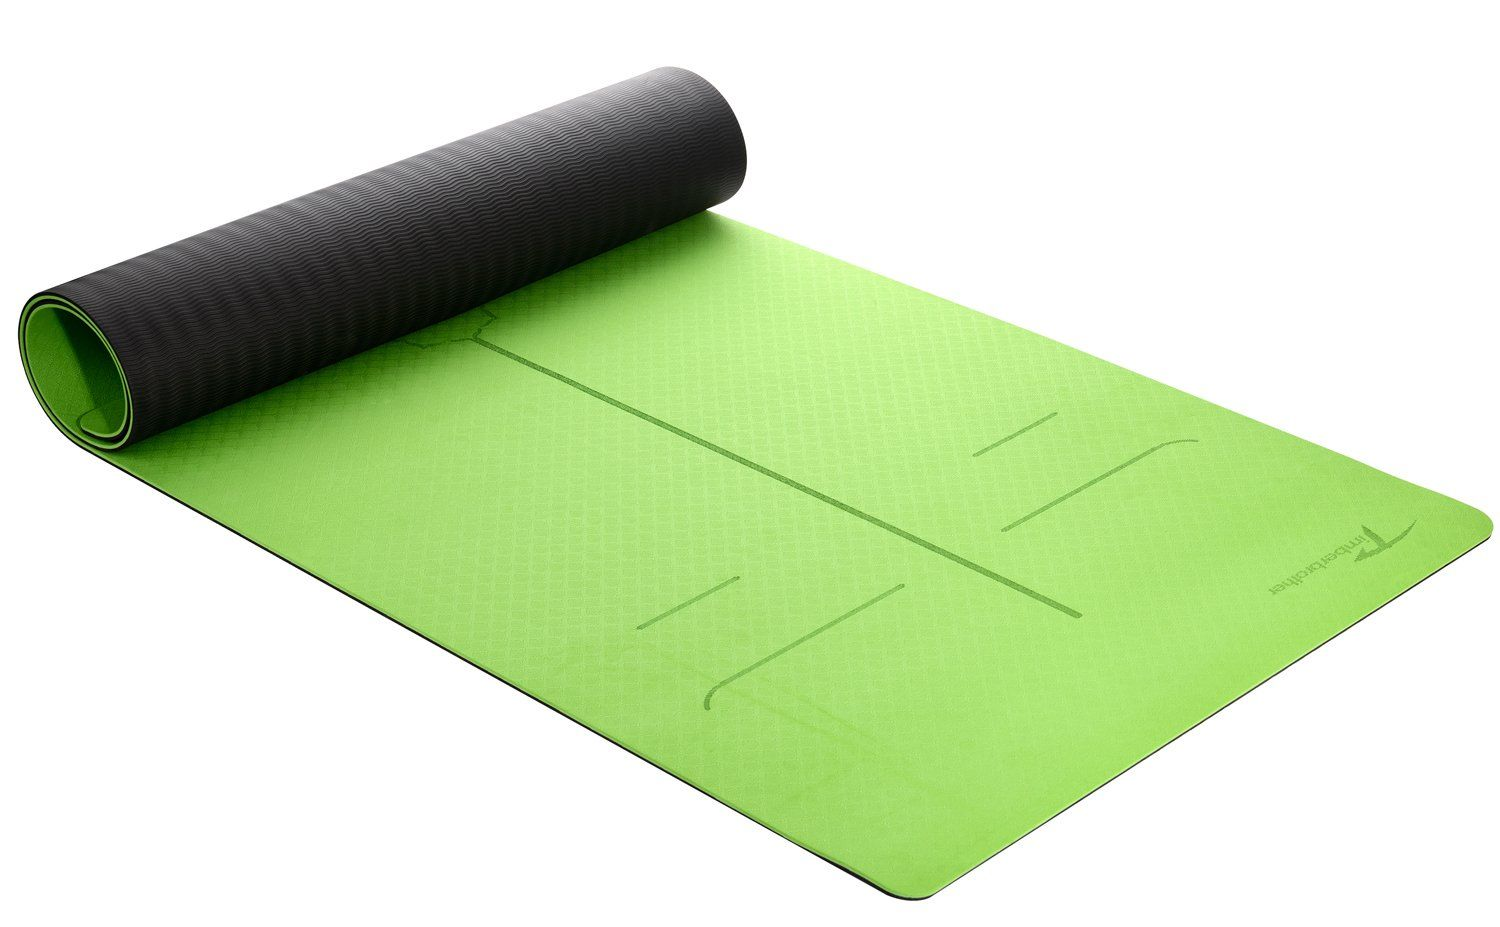 Timberbrother Yoga Mat Eco Friendly Tpe Material With Body Alignment System Extra Wide At 27 X 72 X 6mm Thick Green Blac Green Black S Yoga Mat Mats